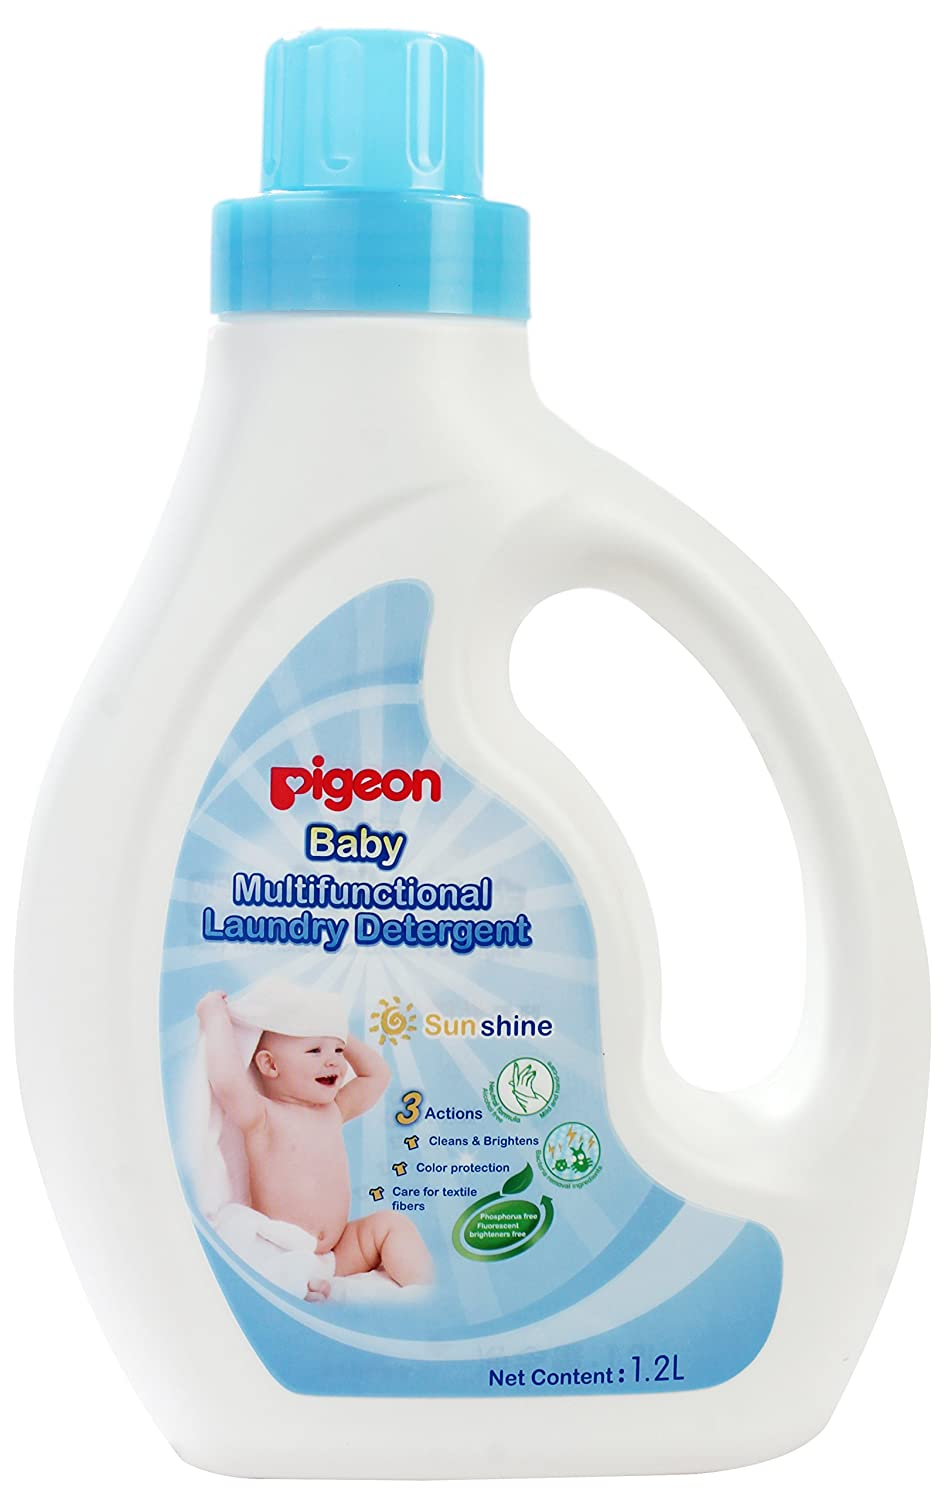 Pigeon Multifunctional Laundry Detergent, Sunshine (1.2L)